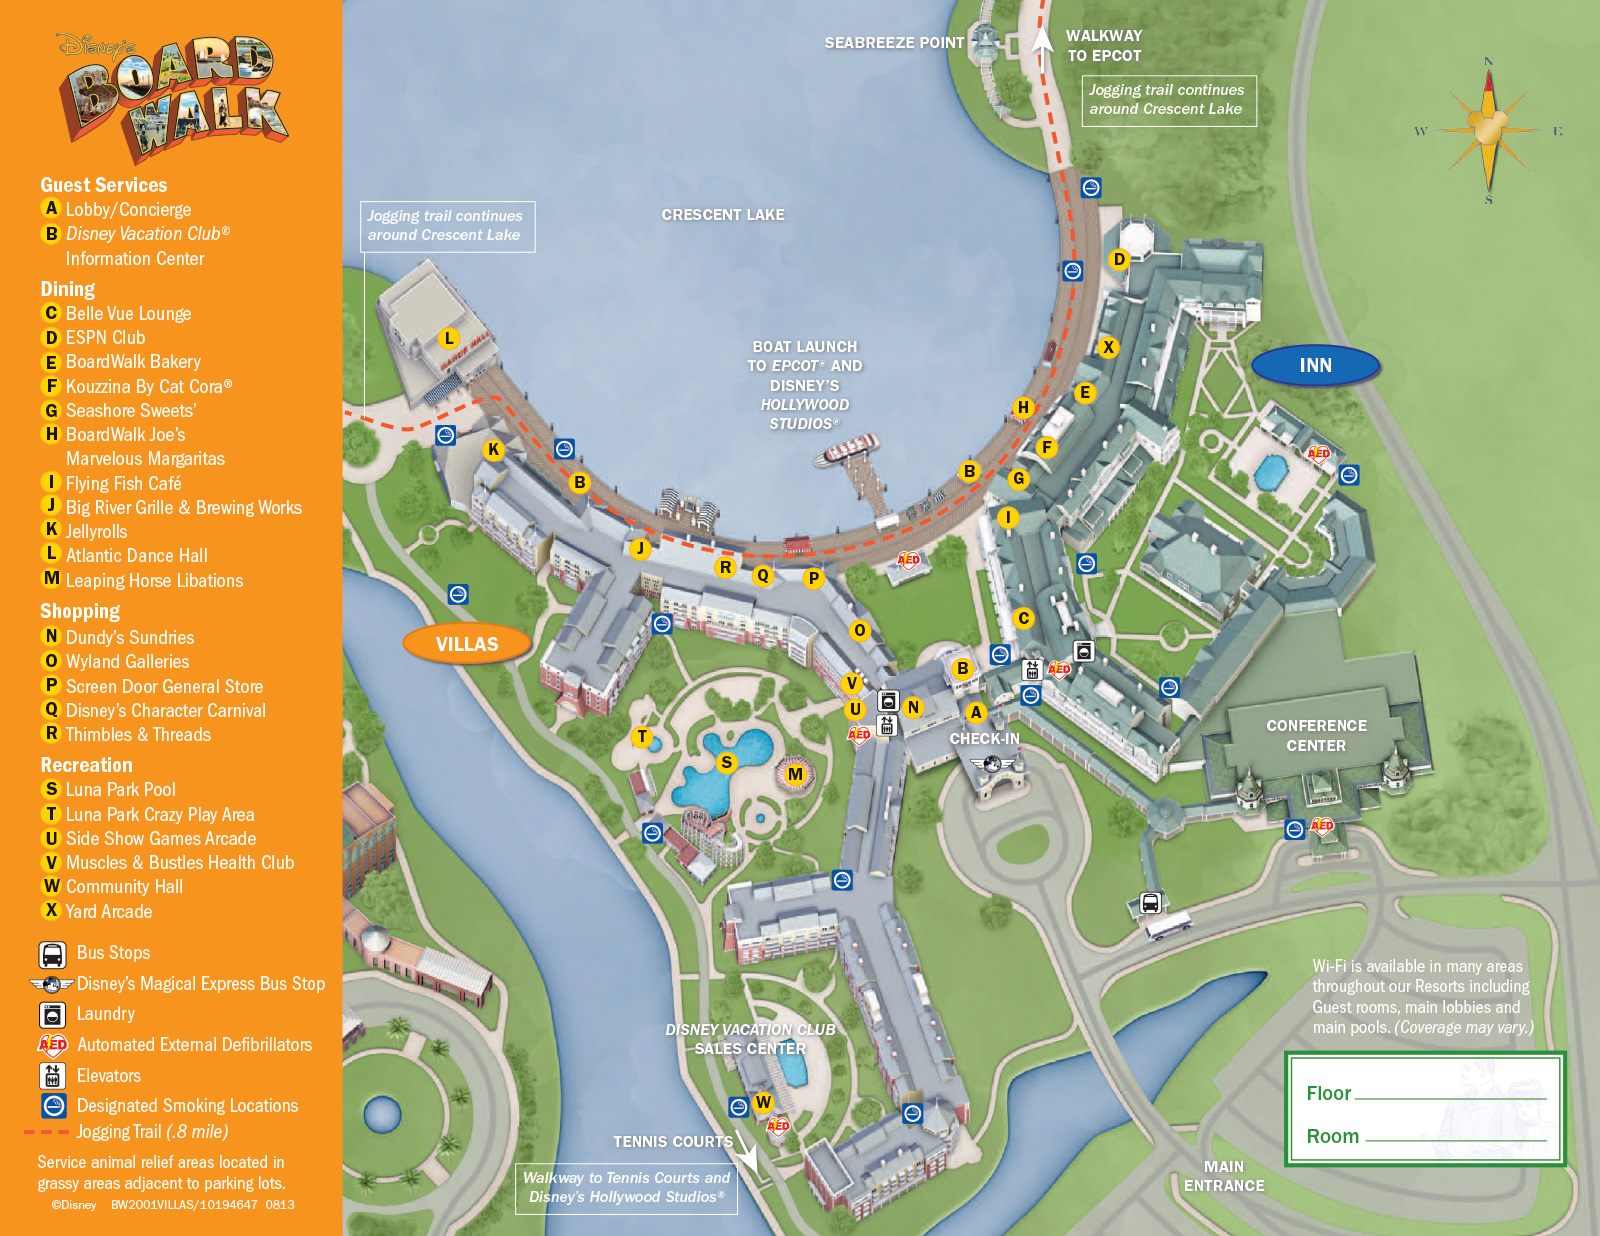 New look 2013 Resort Hotel maps  Photo 1 of 37